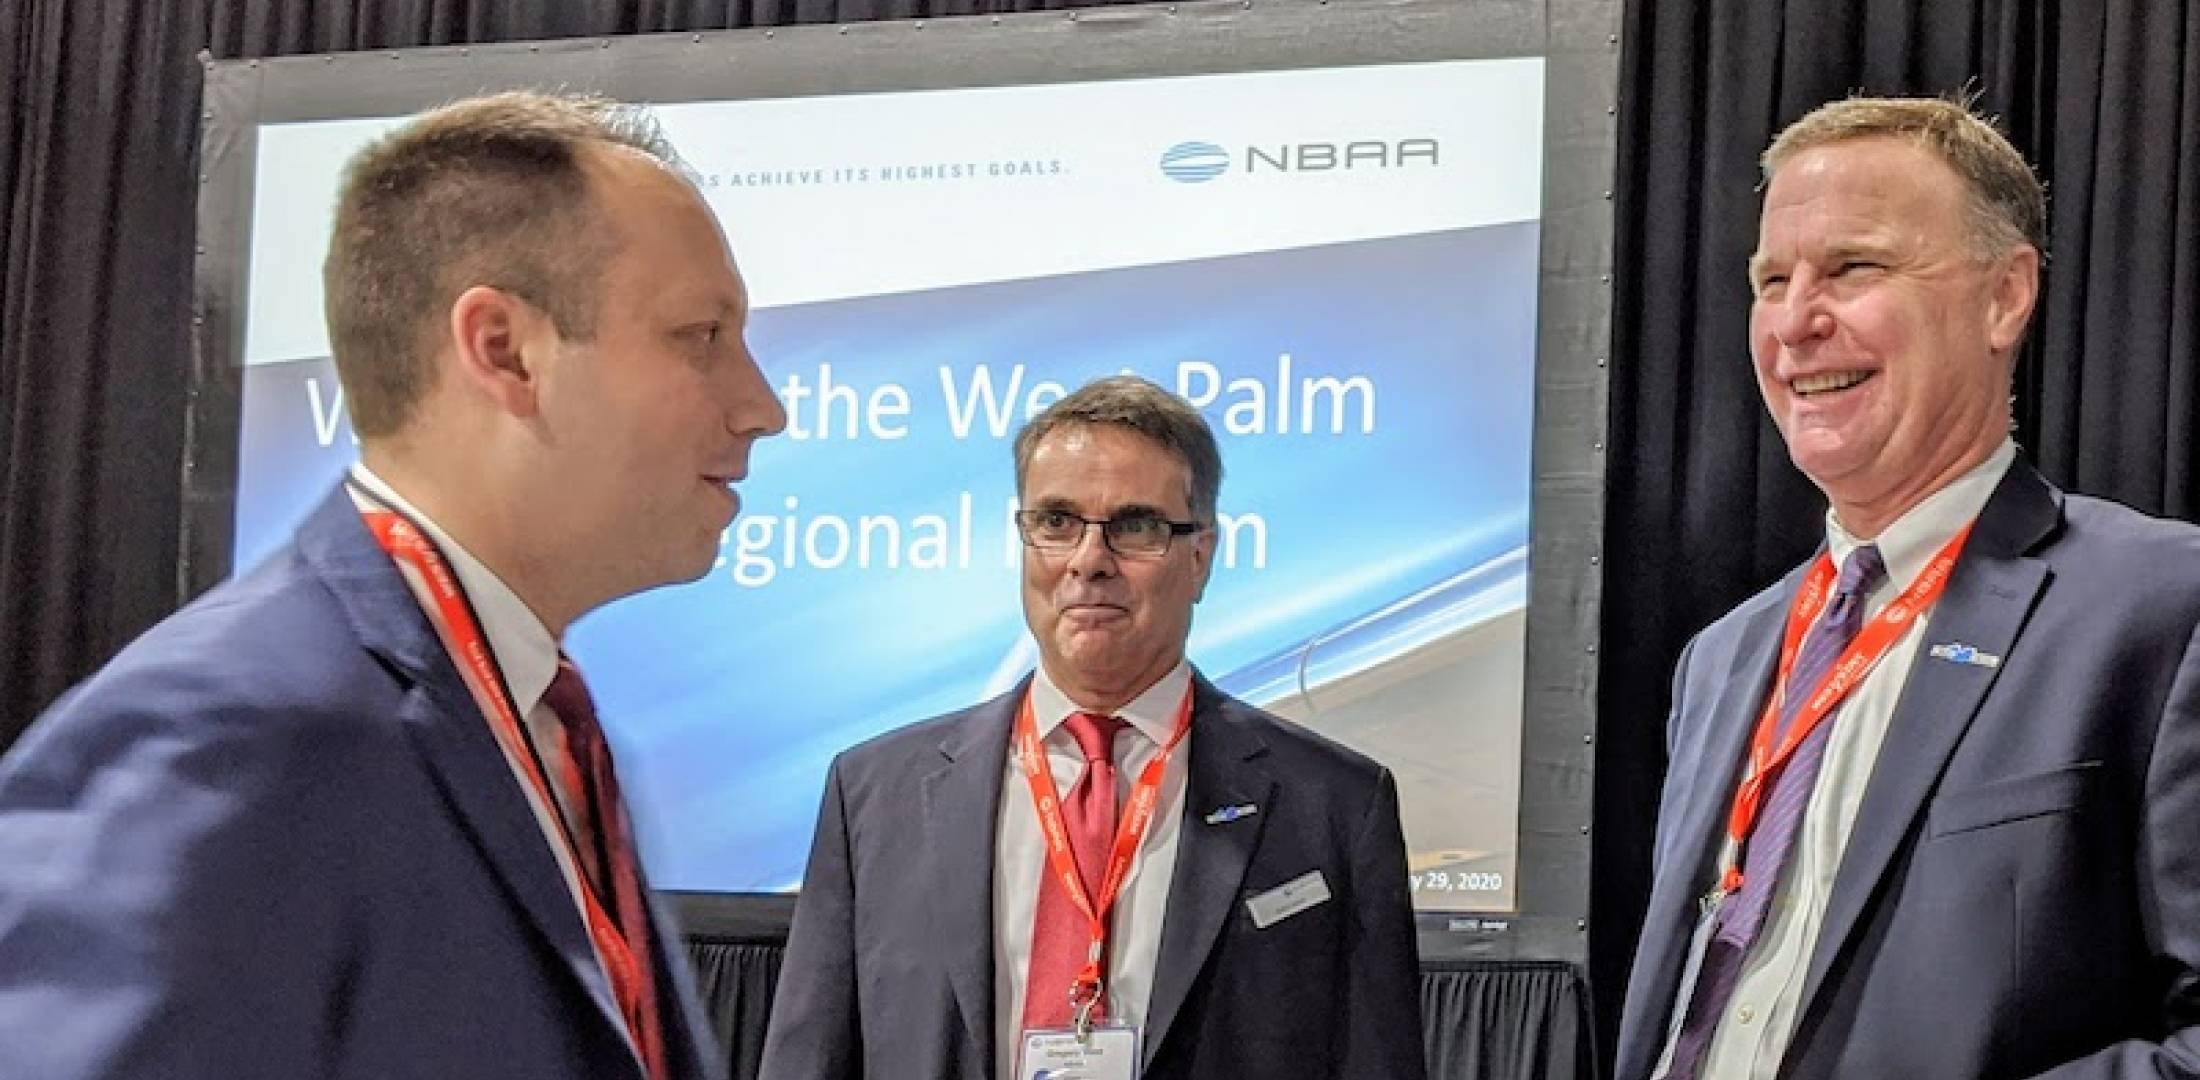 NBAA execs and bigwigs